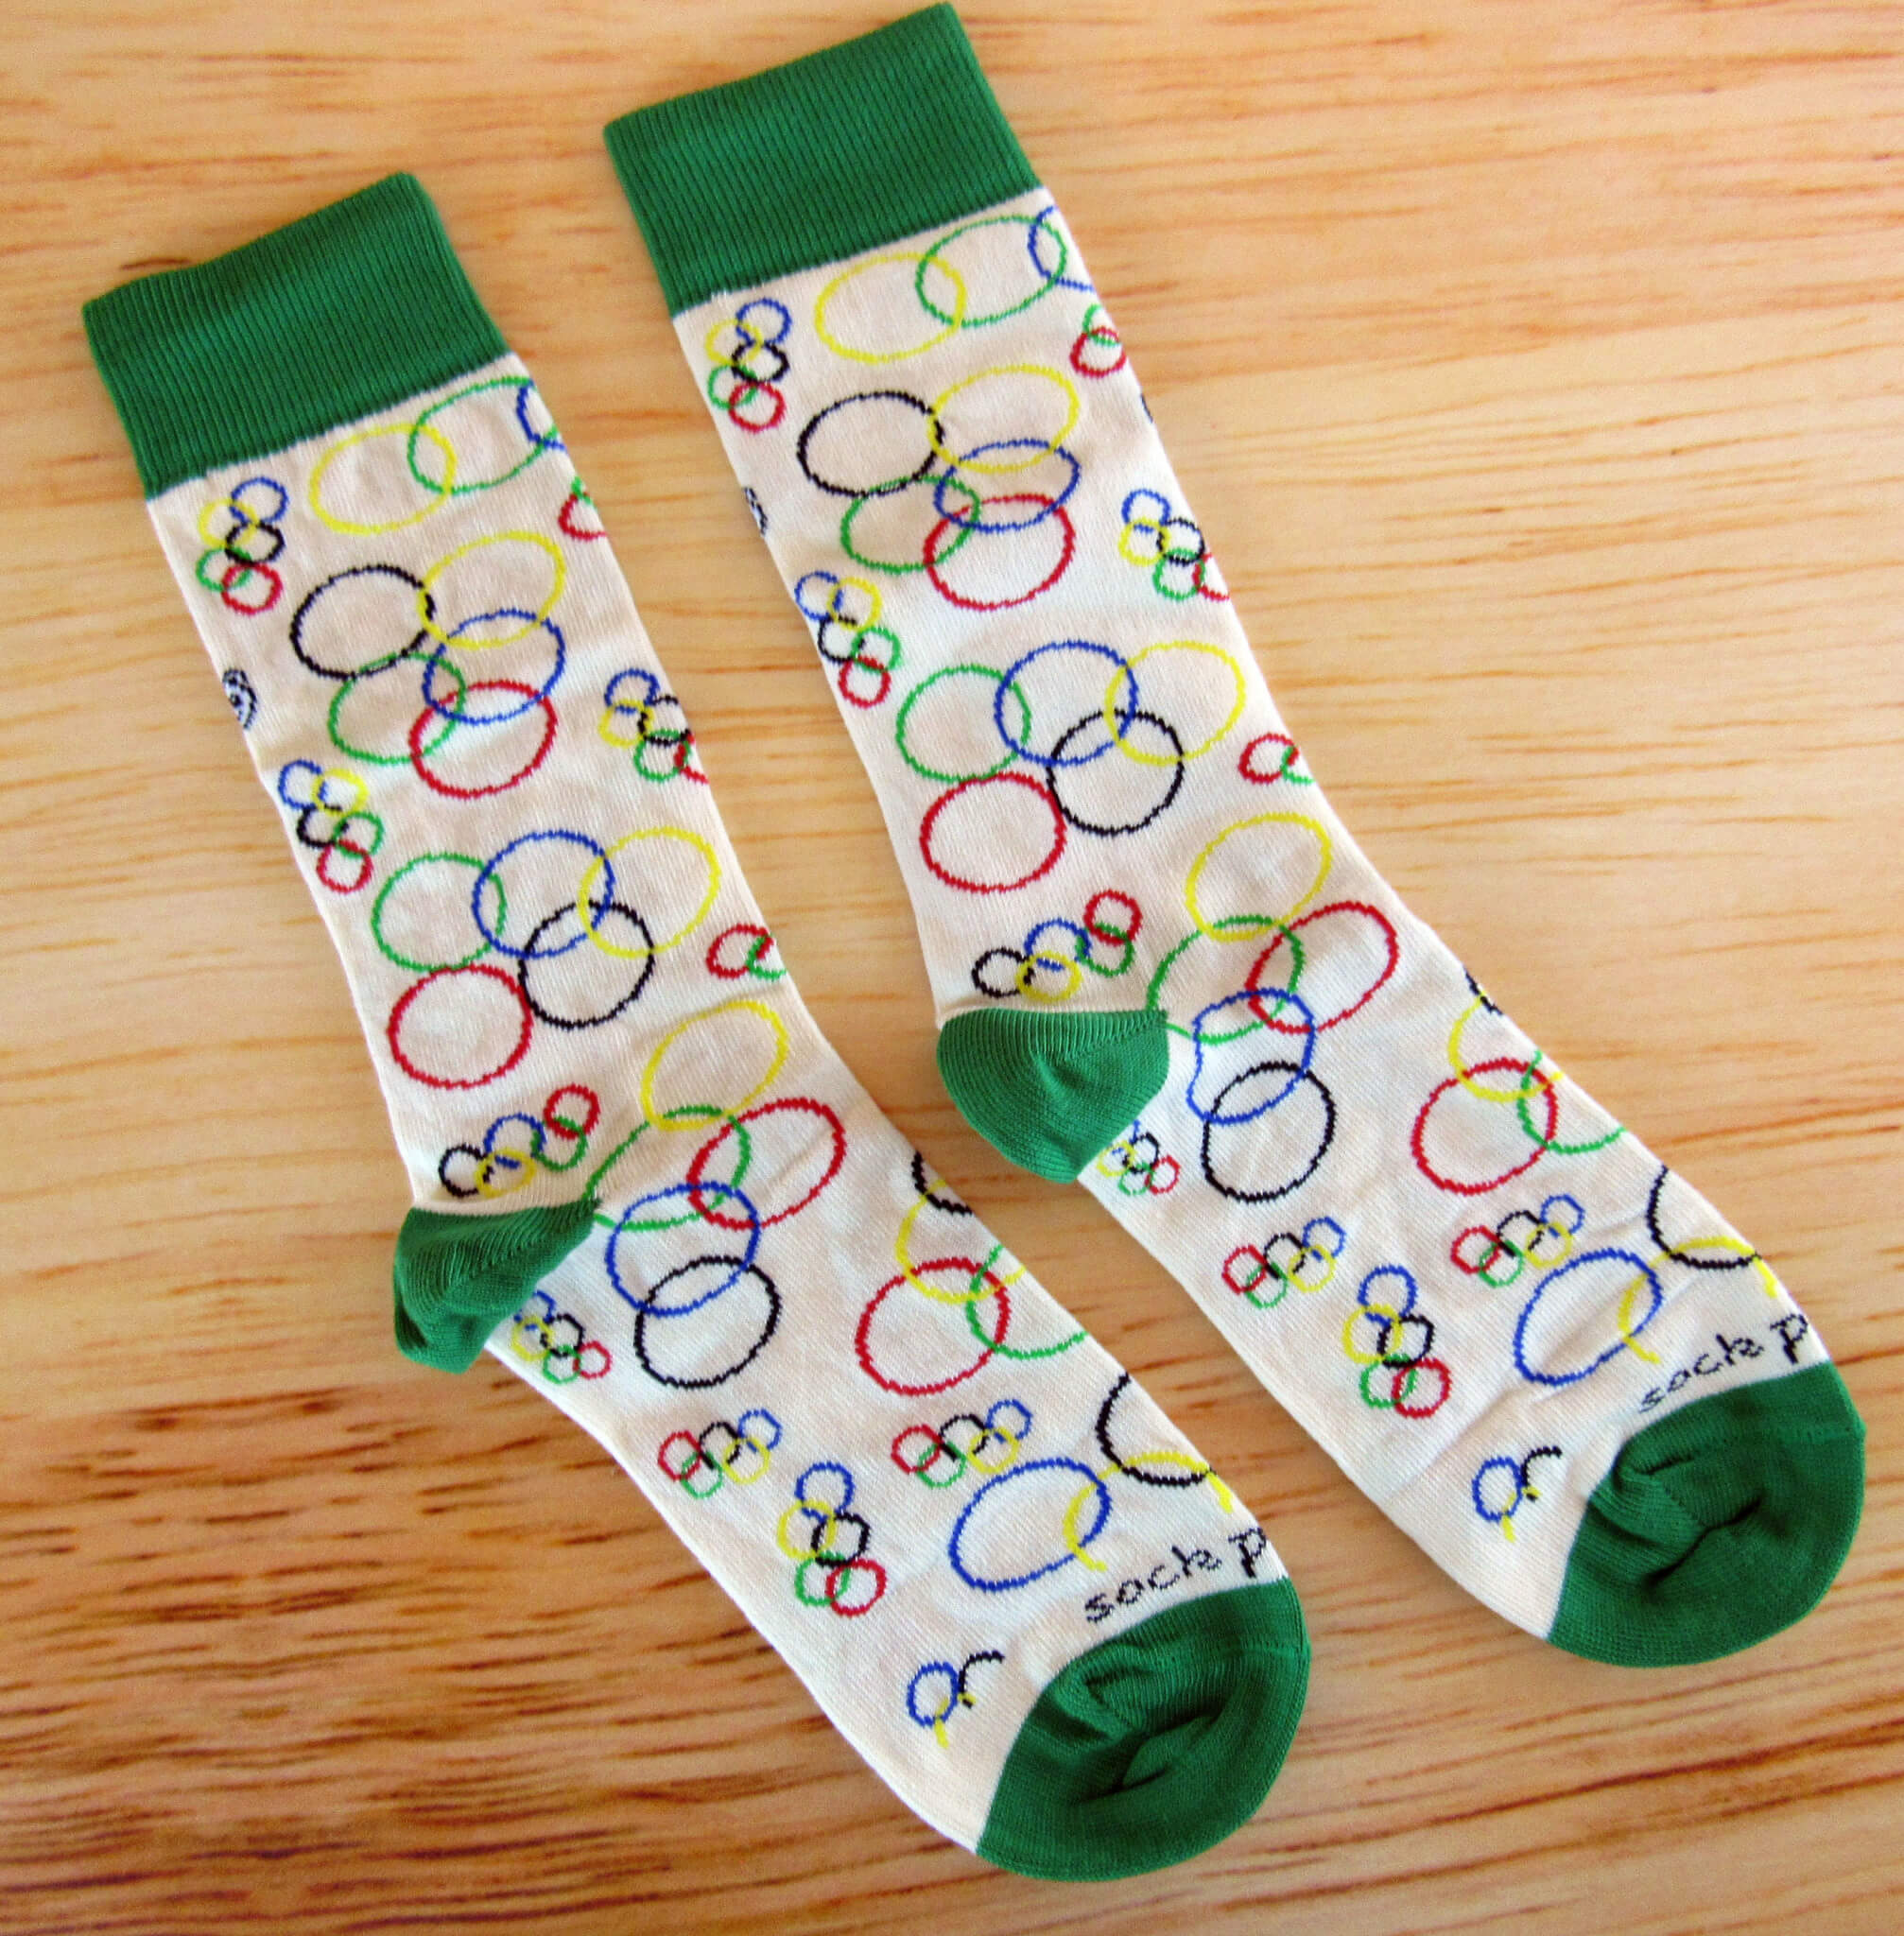 Olympic Themed Socks